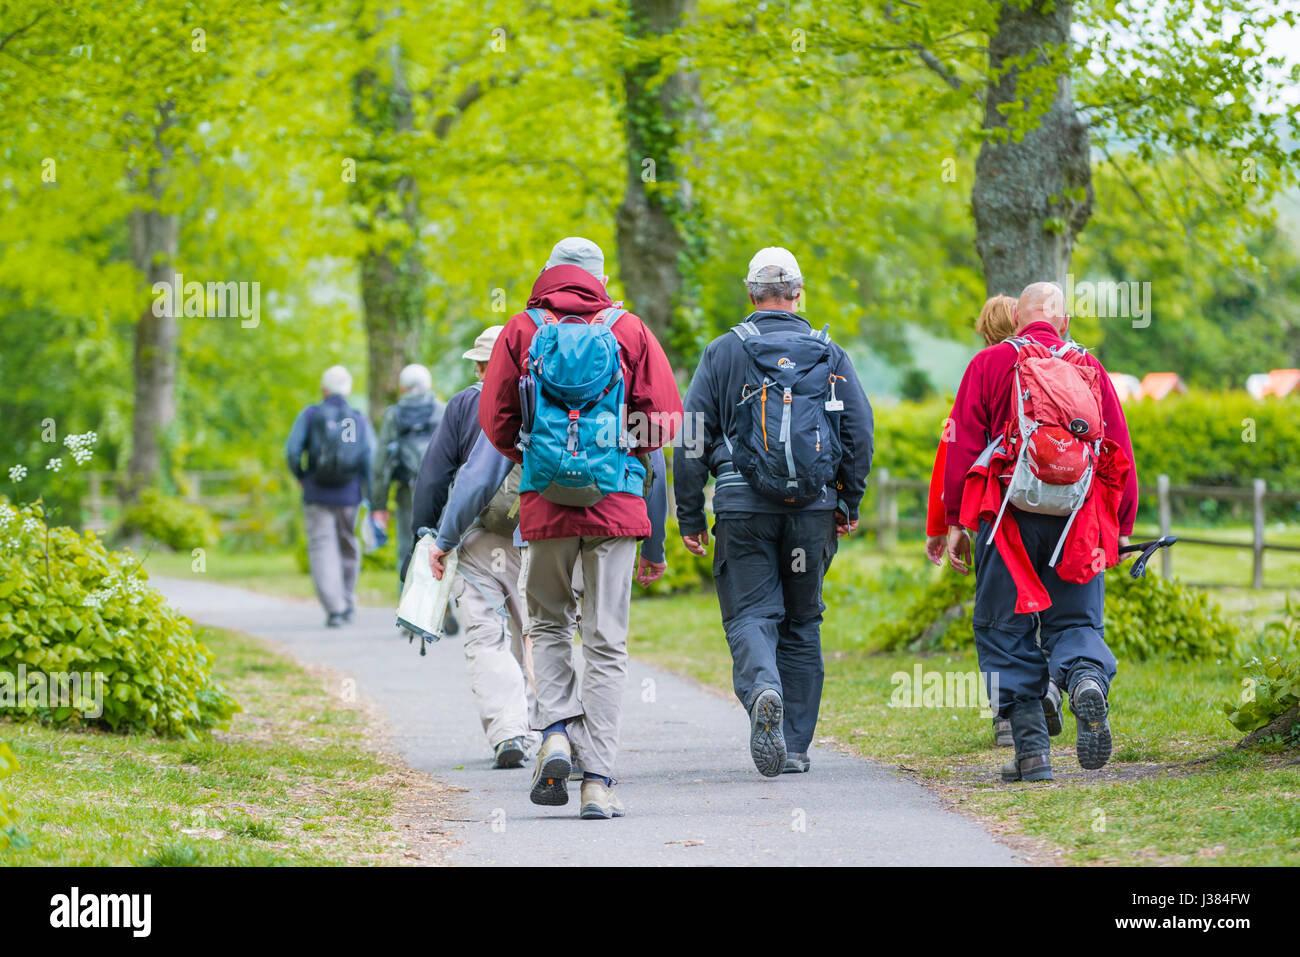 Group of elderly people walking with rucksacks preparing to go hiking or rambling. - Stock Image